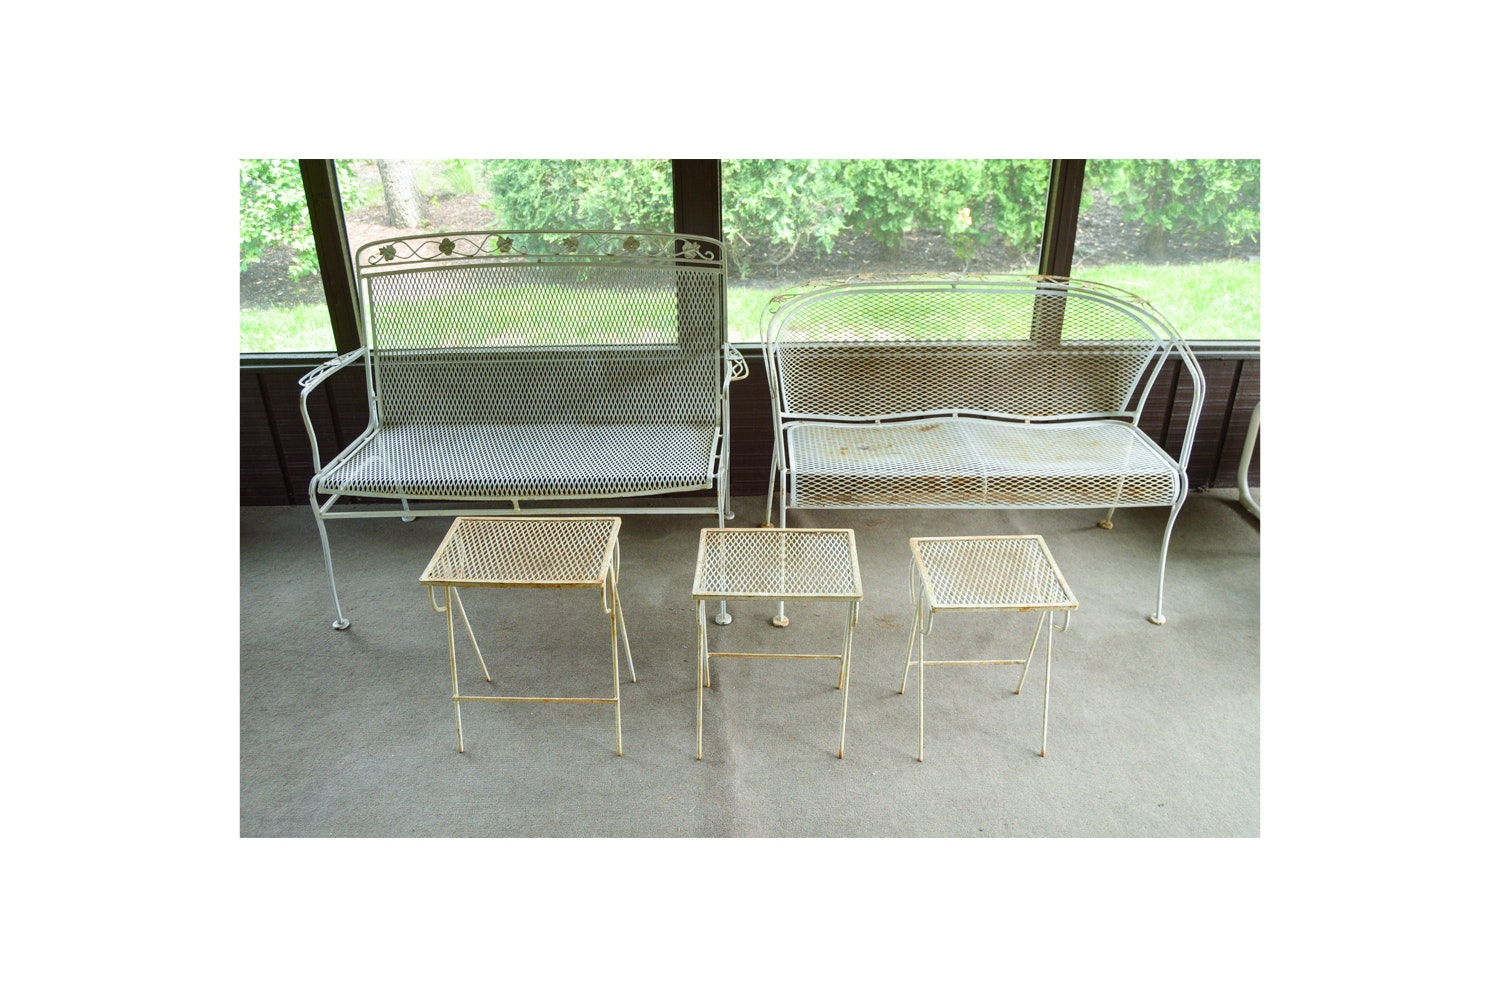 Vintage Metal Patio Benches and Nesting Table Set